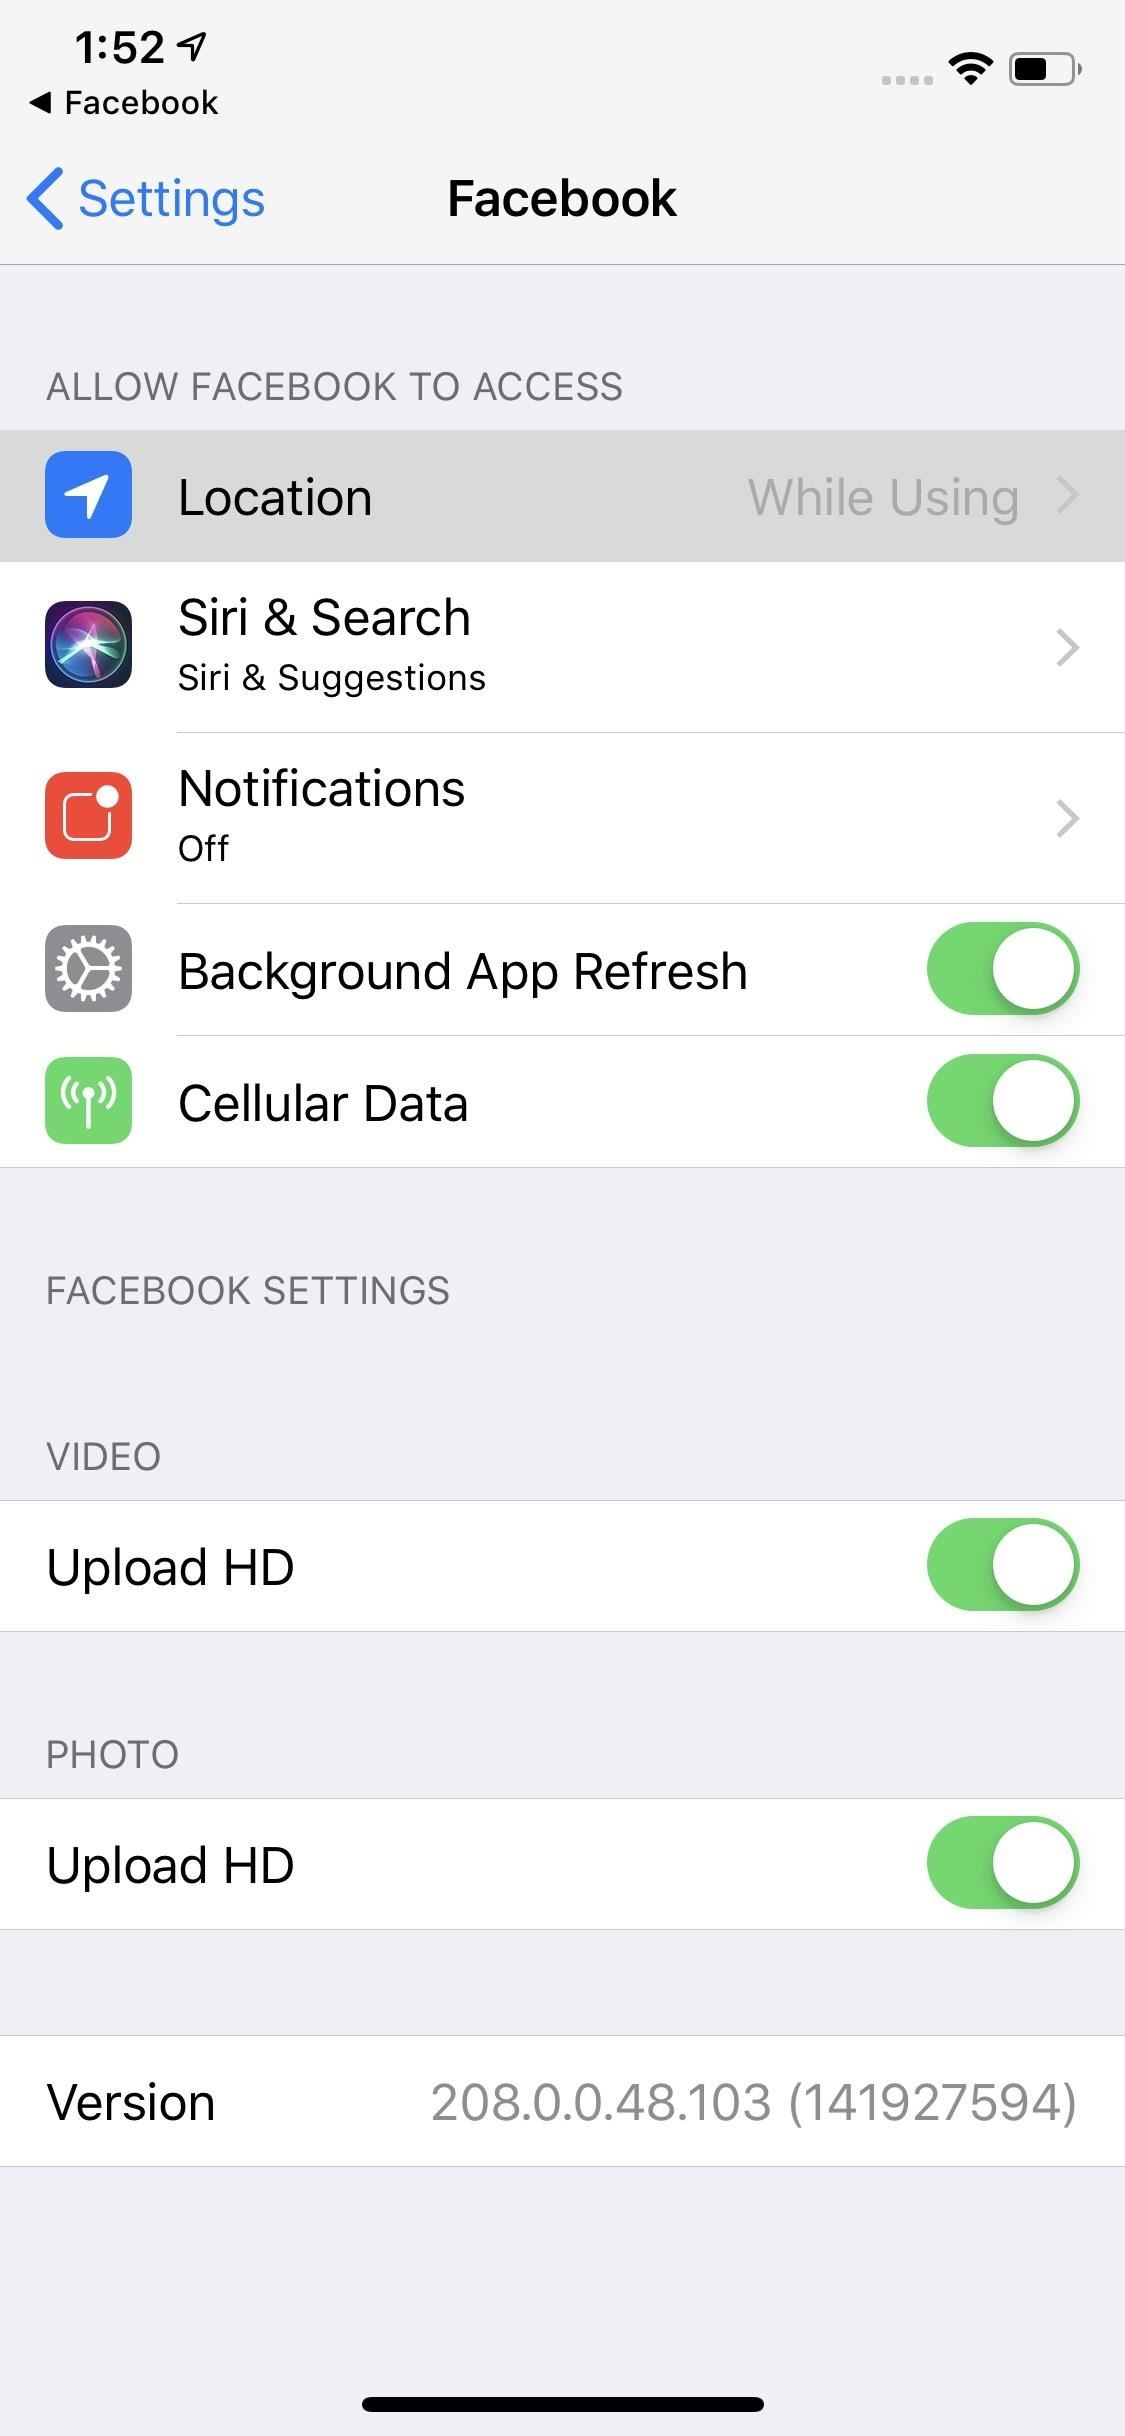 How to Keep Facebook from Tracking Your Location When You're Not Using the App